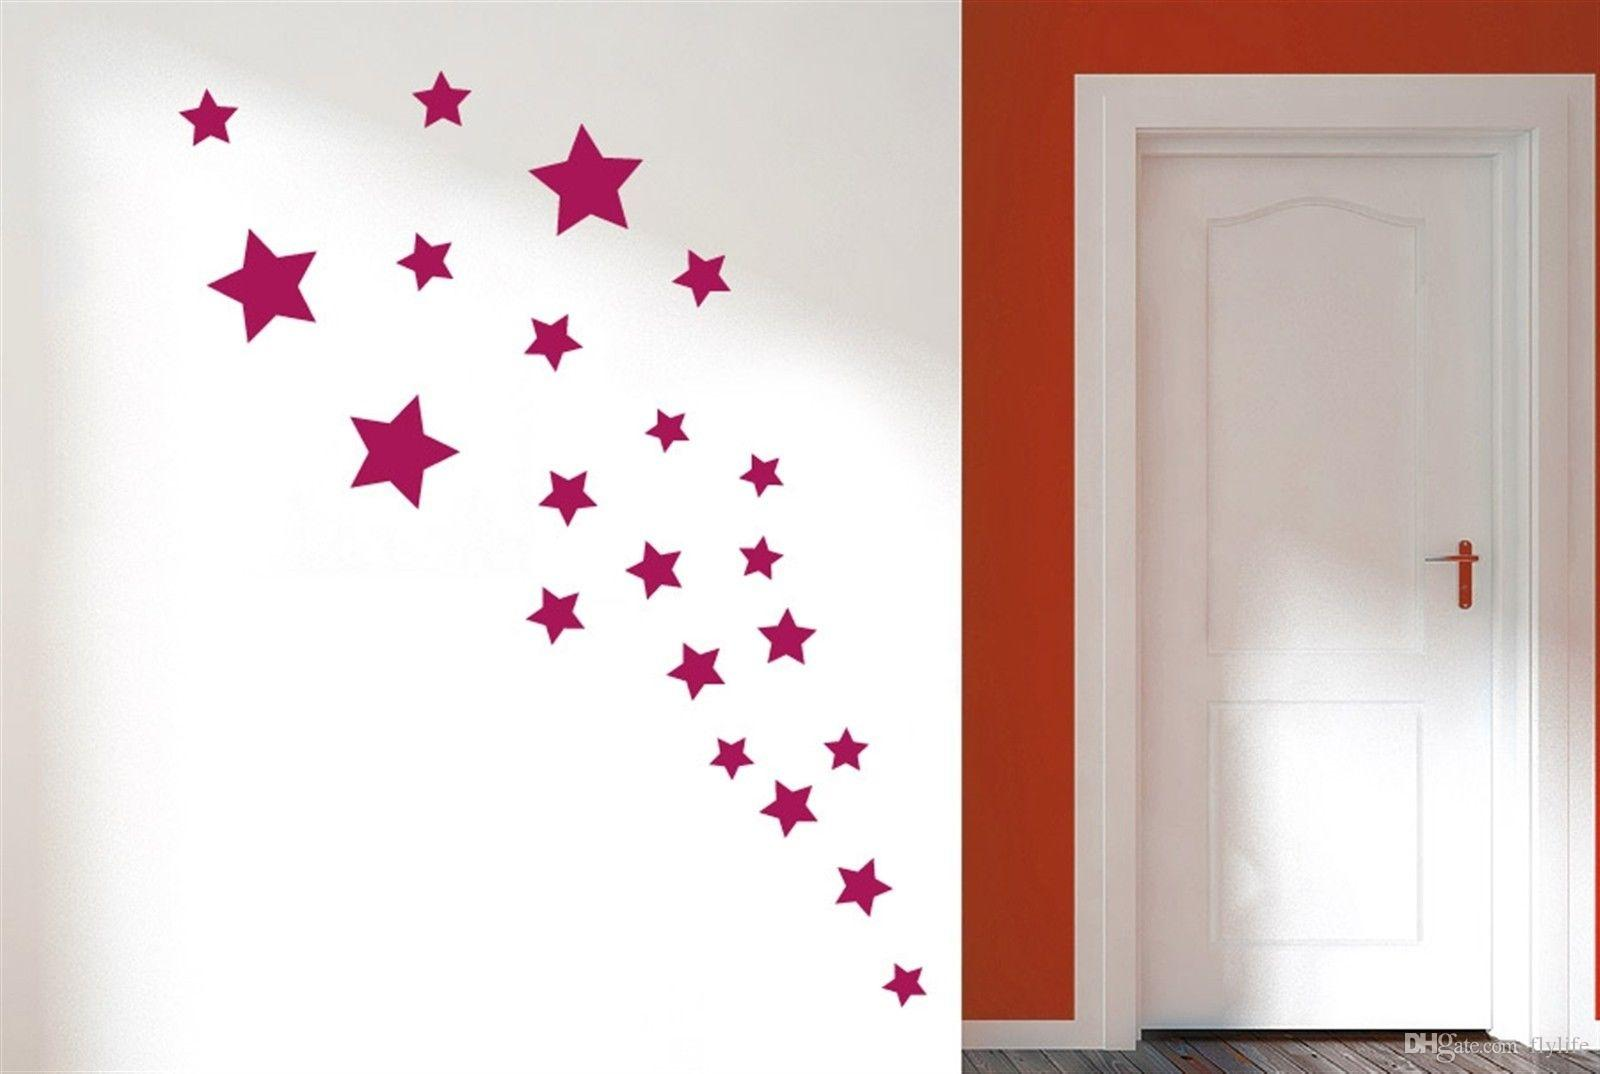 Removable various color stars decorative wall stickers vinyl wall art decals for kids rooms home - Stars for walls decorating ...